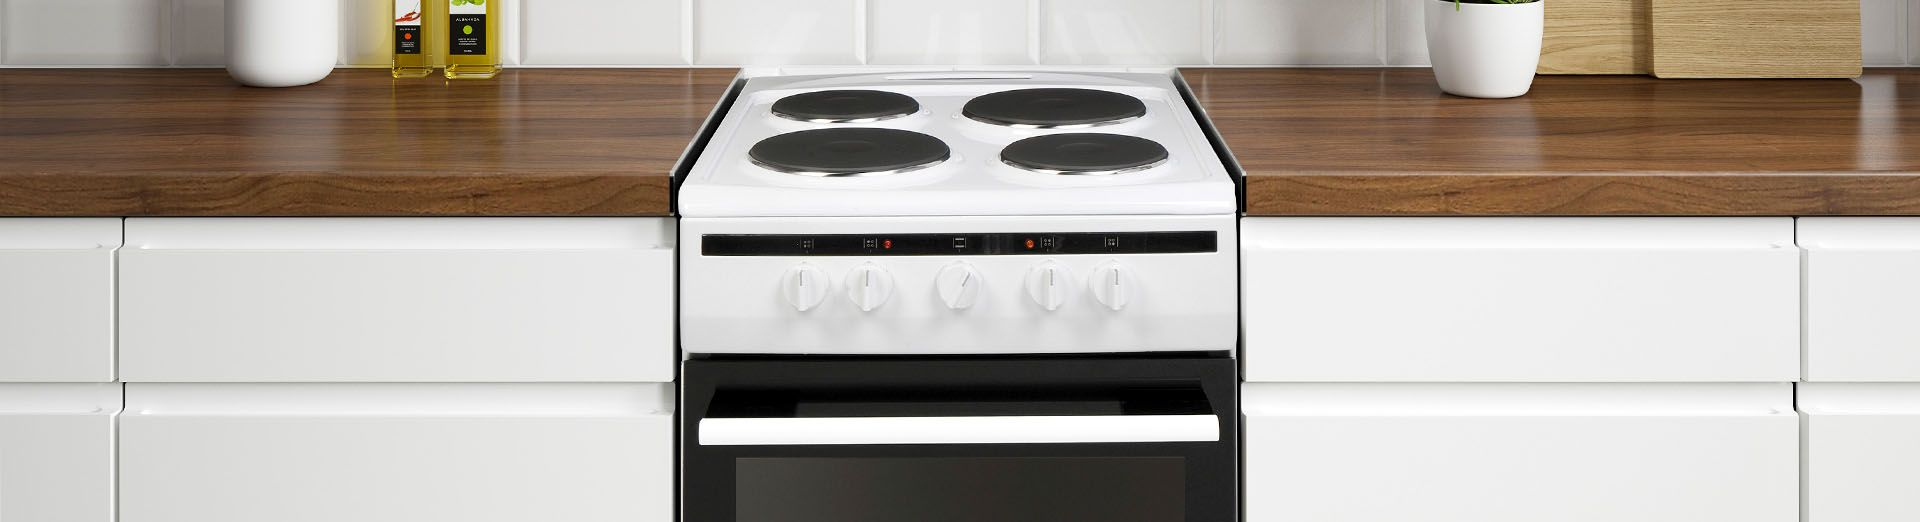 electric cookers top banner